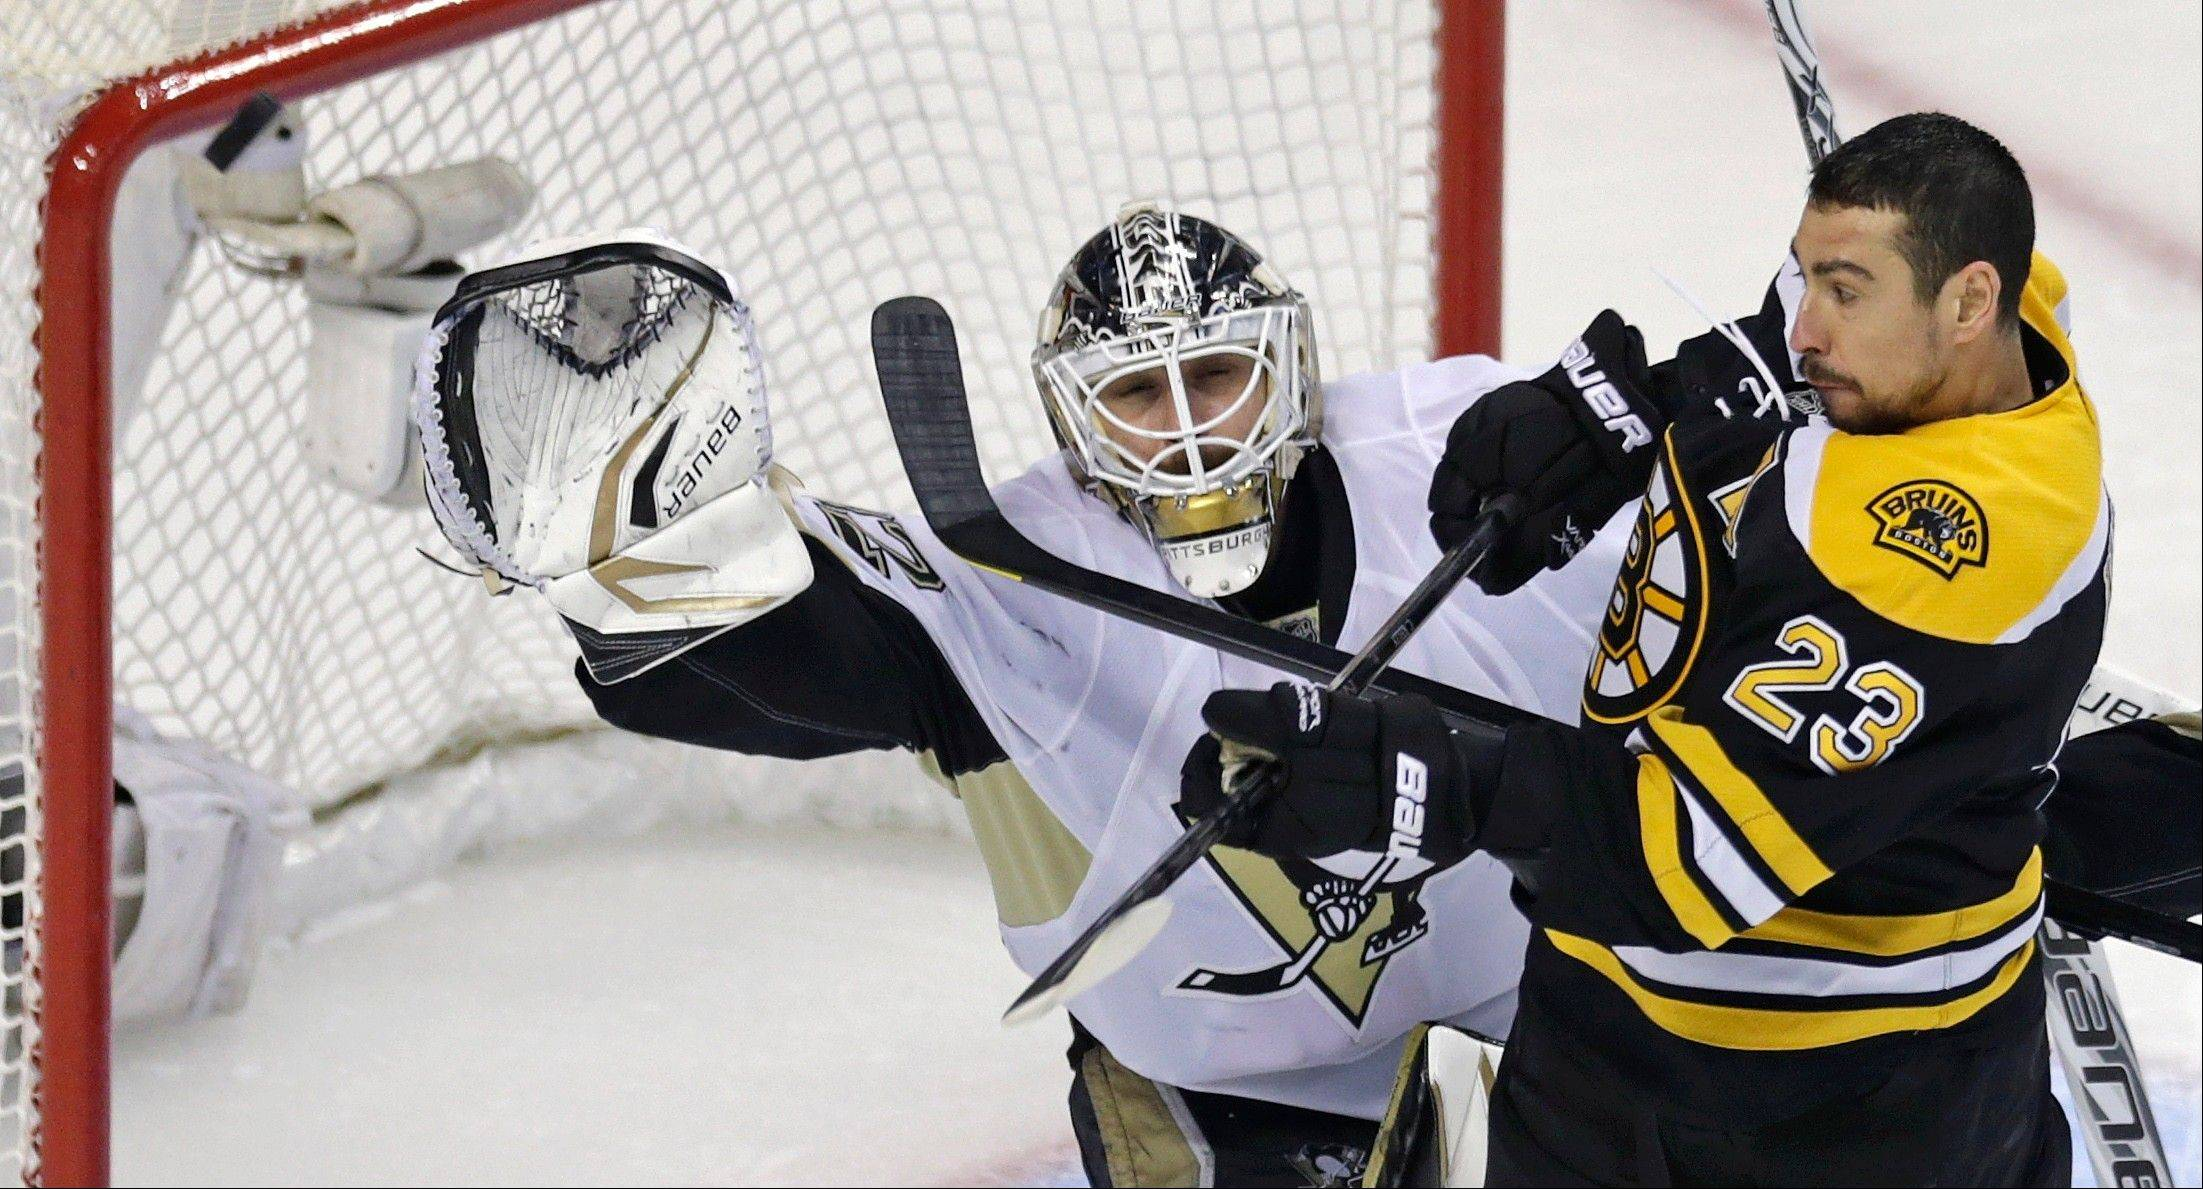 Boston Bruins center Chris Kelly tries to get the stick on the puck as Pittsburgh Penguins goalie Tomas Vokoun raises his glove to make a save during overtime in Game 3 of the NHL hockey Stanley Cup playoffs Eastern Conference finals, in Boston on Wednesday.